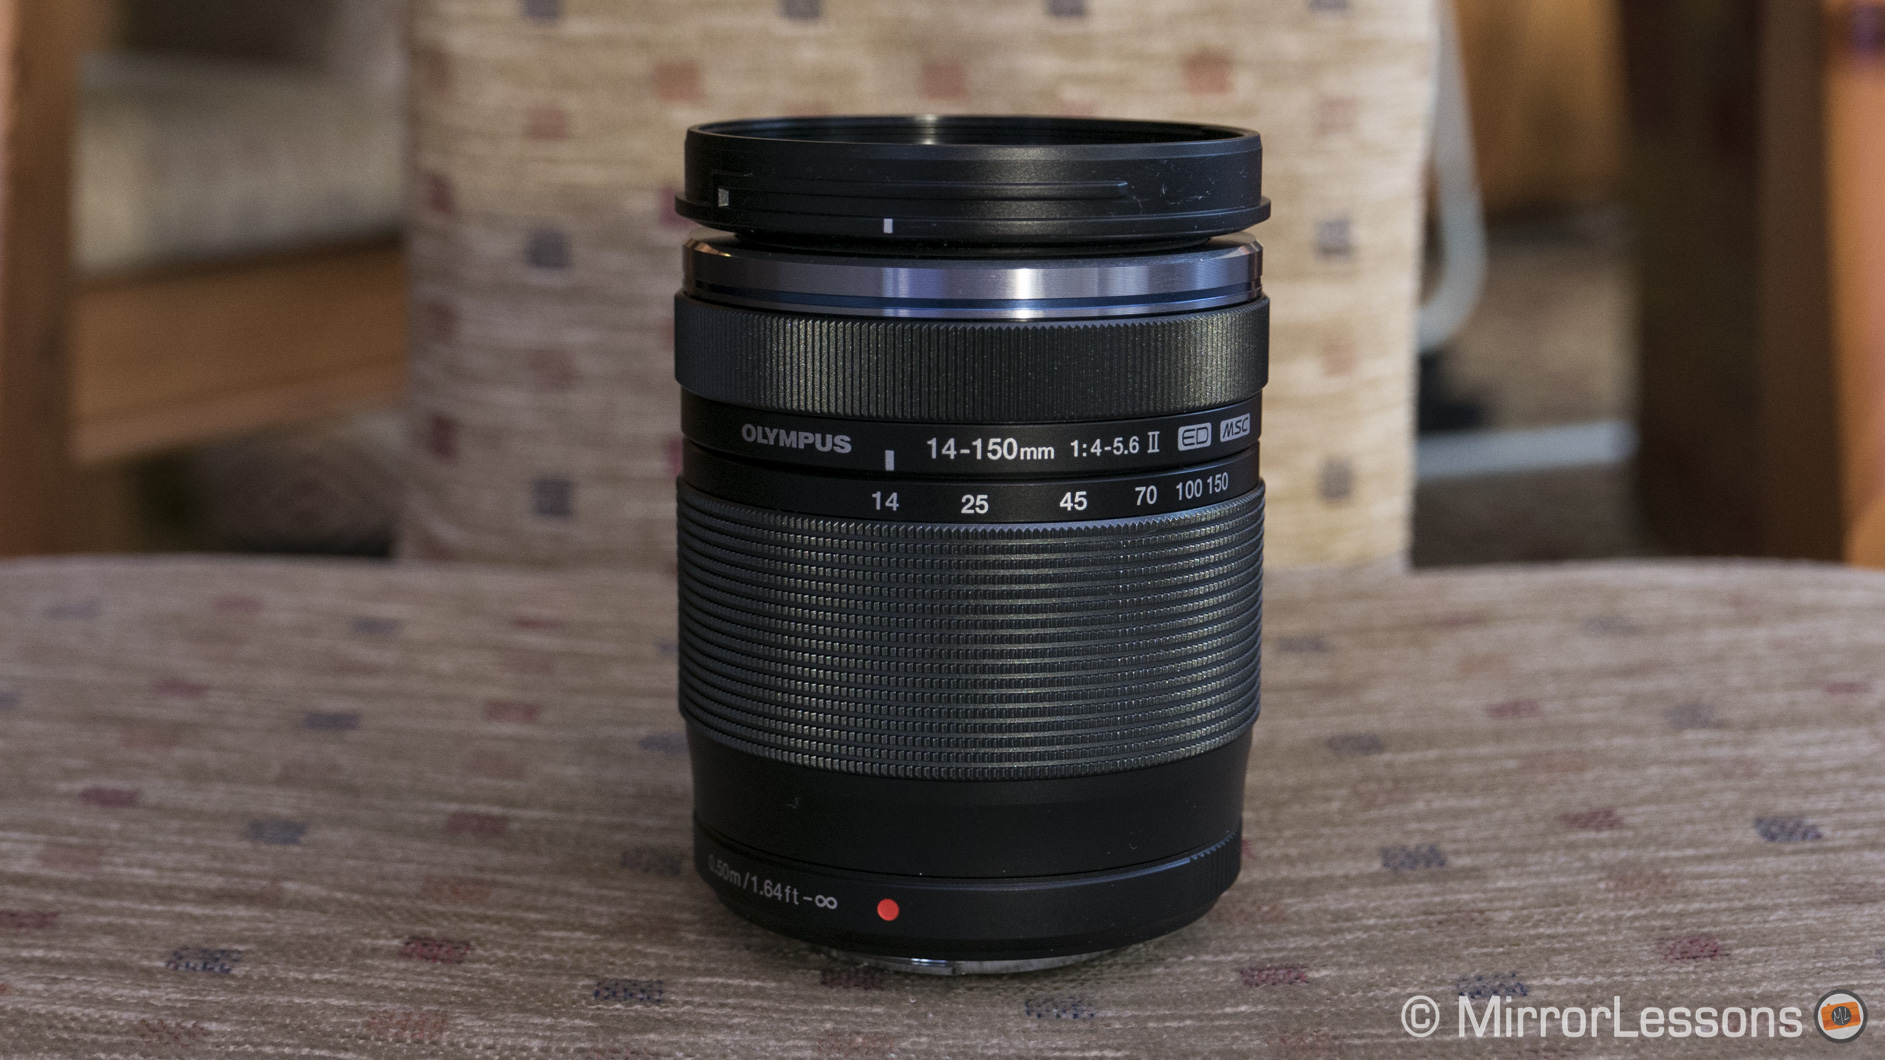 Olympus M.Zuiko 14-150mm f4-5.6 II Review